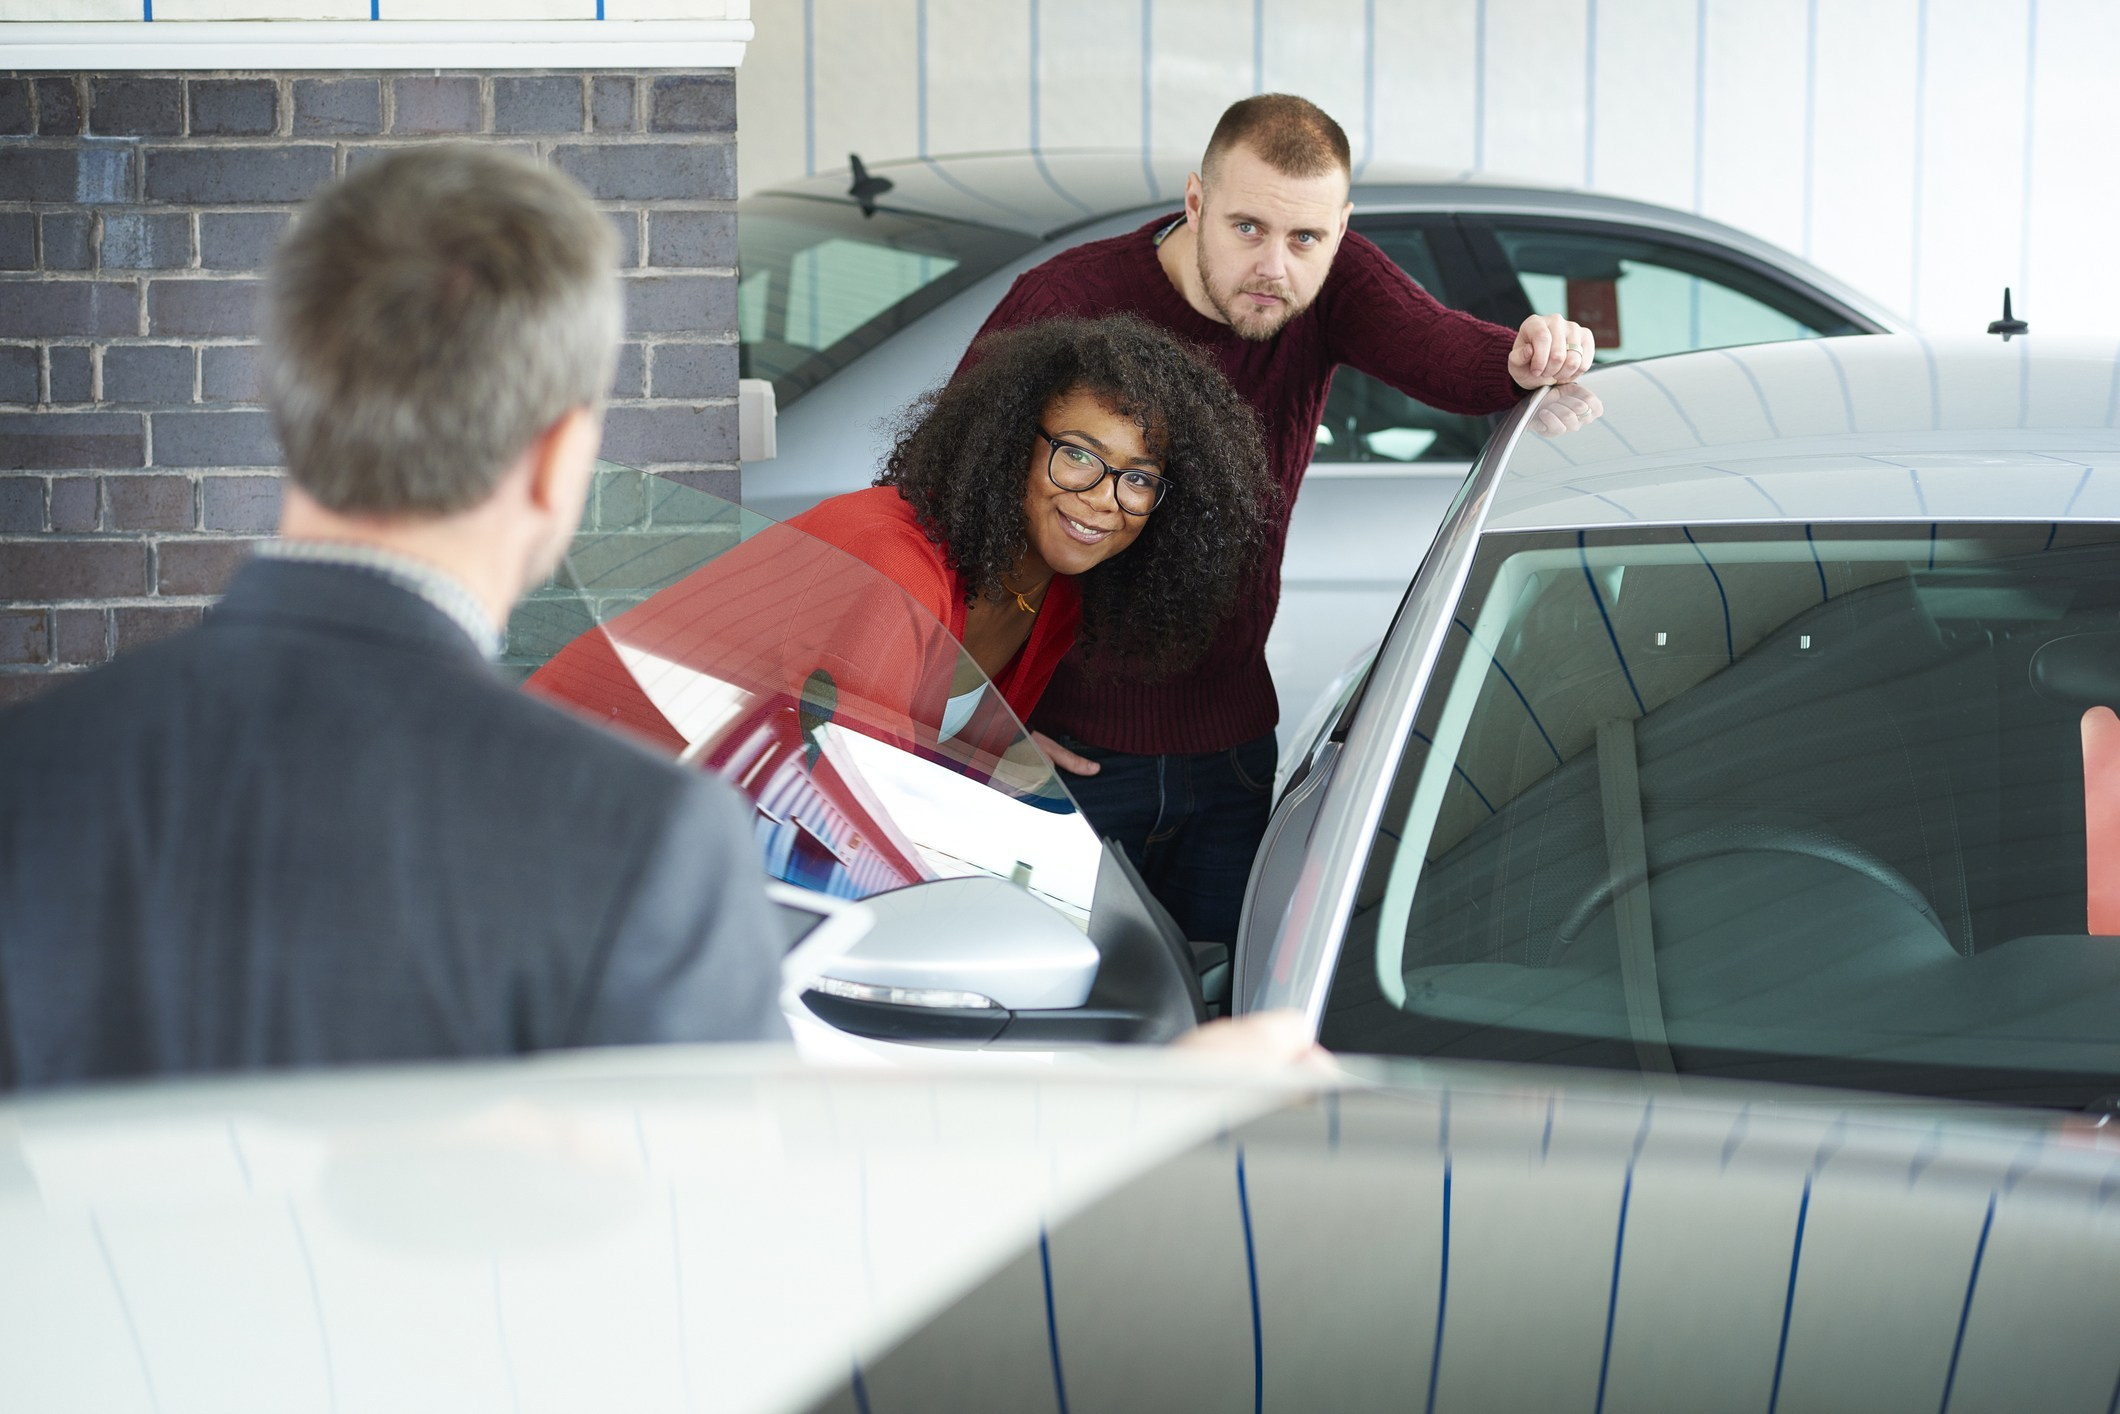 Best Used Car Check Awesome 10 Things to Look for when Ing A Used Car